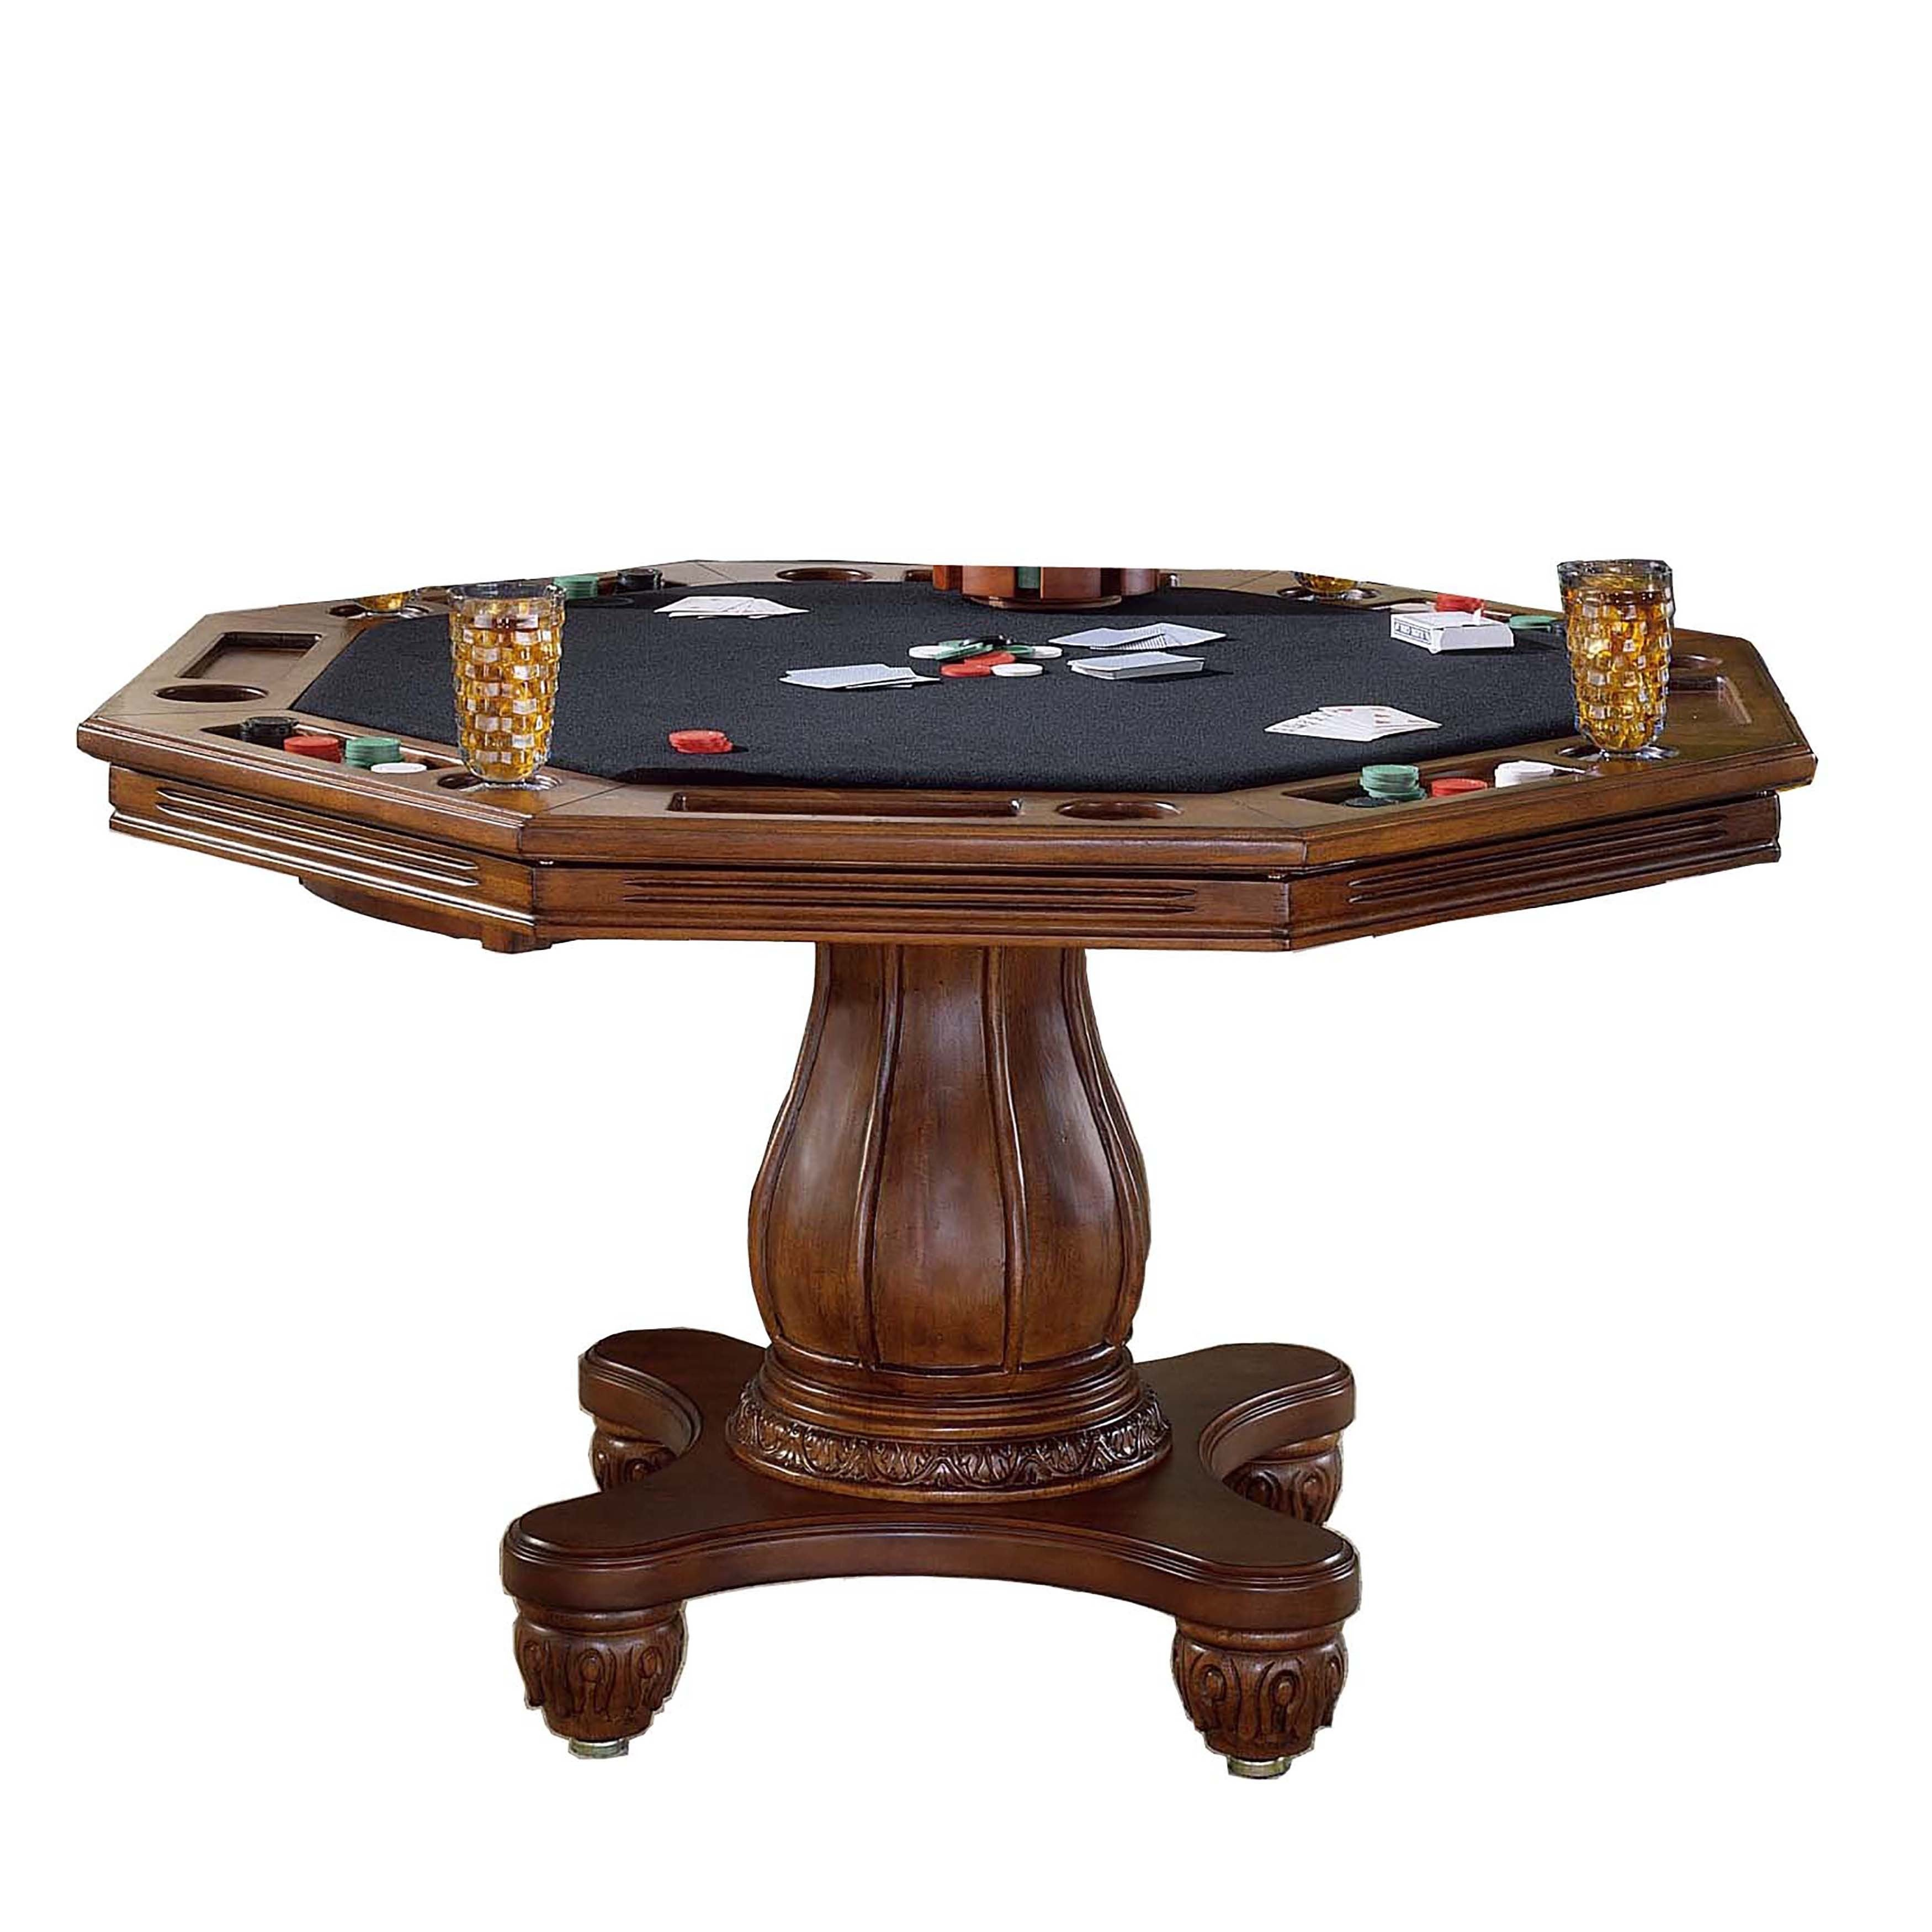 table board geeknson for dining quality furniture new slider and games tables game